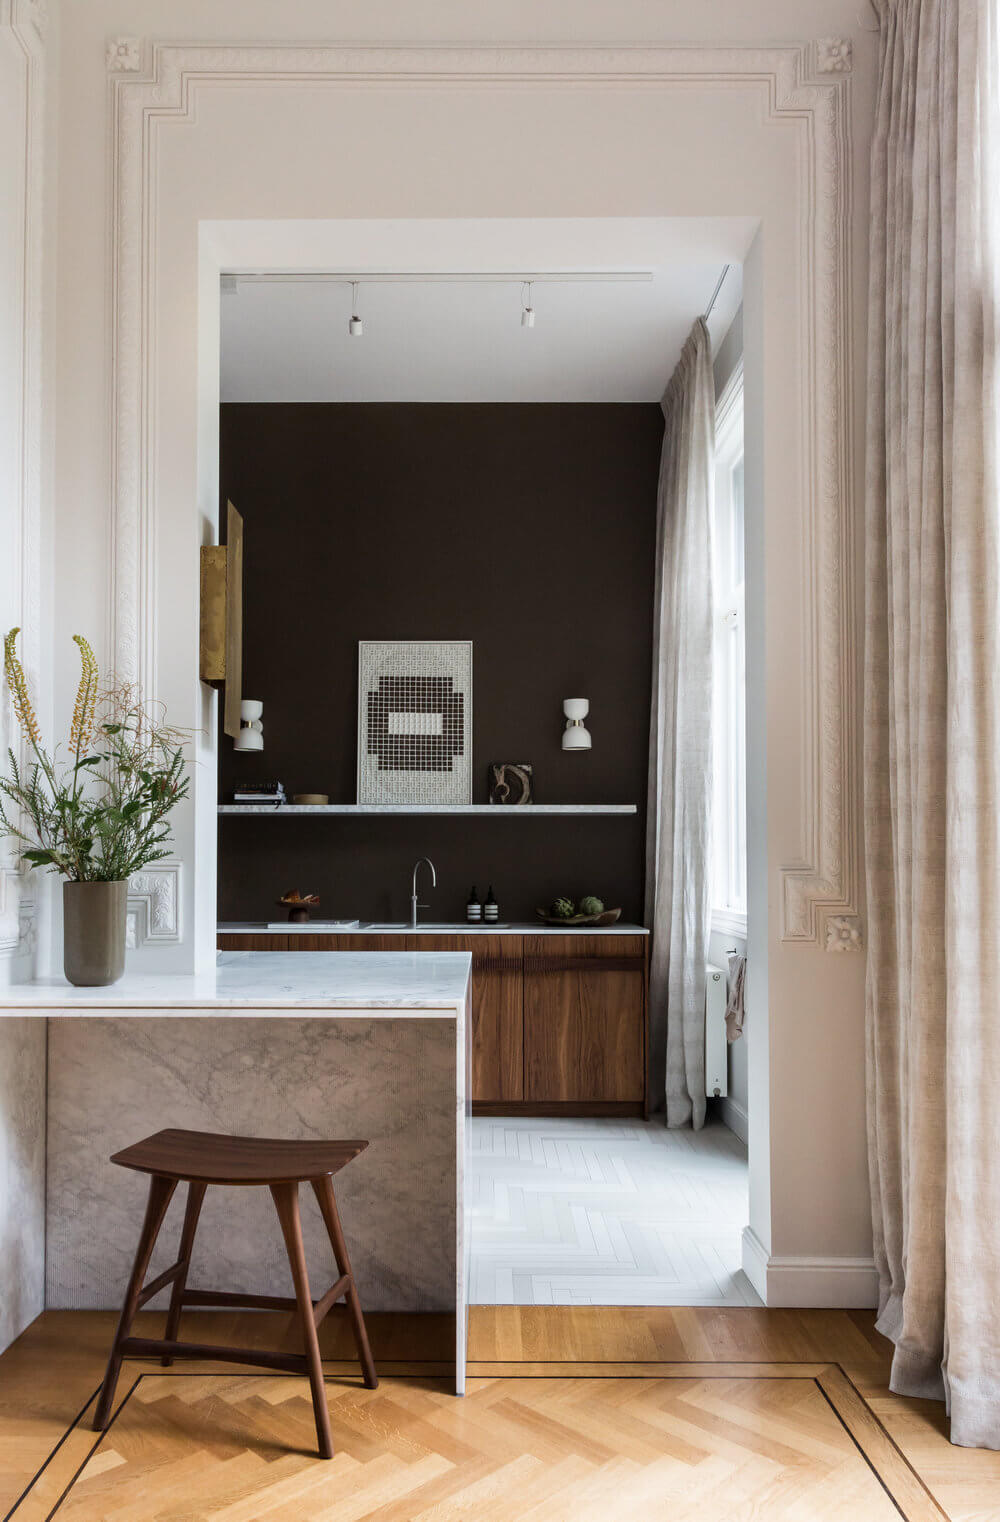 An Elegant 19th-Century Townhouse in The Netherlands